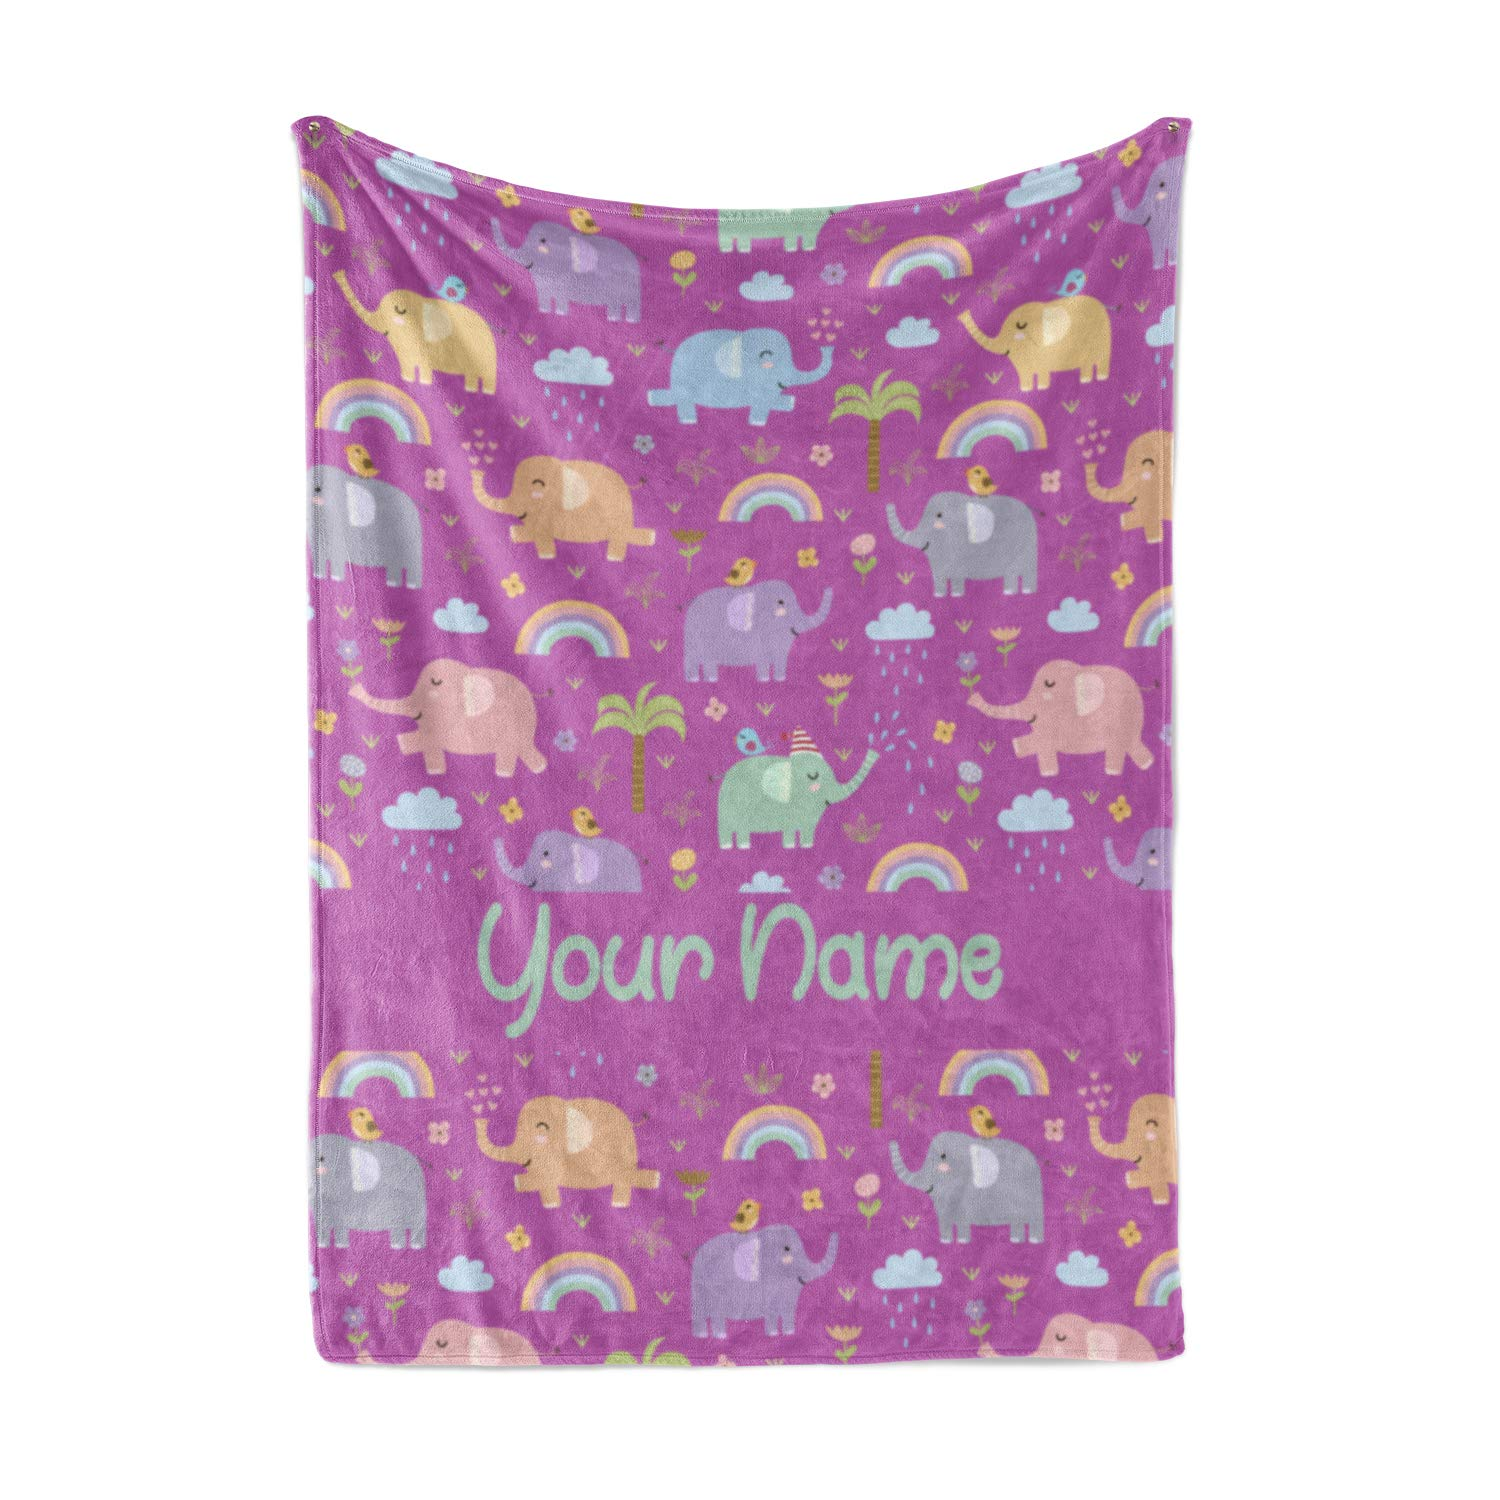 Personalized Corner Custom Elephant Pattern Purple Fleece Throw Blanket for Kids - Boys Girls Baby Toddler Infants Blankets for Bed (Baby/Pet 30''x40'') by Personalized Corner